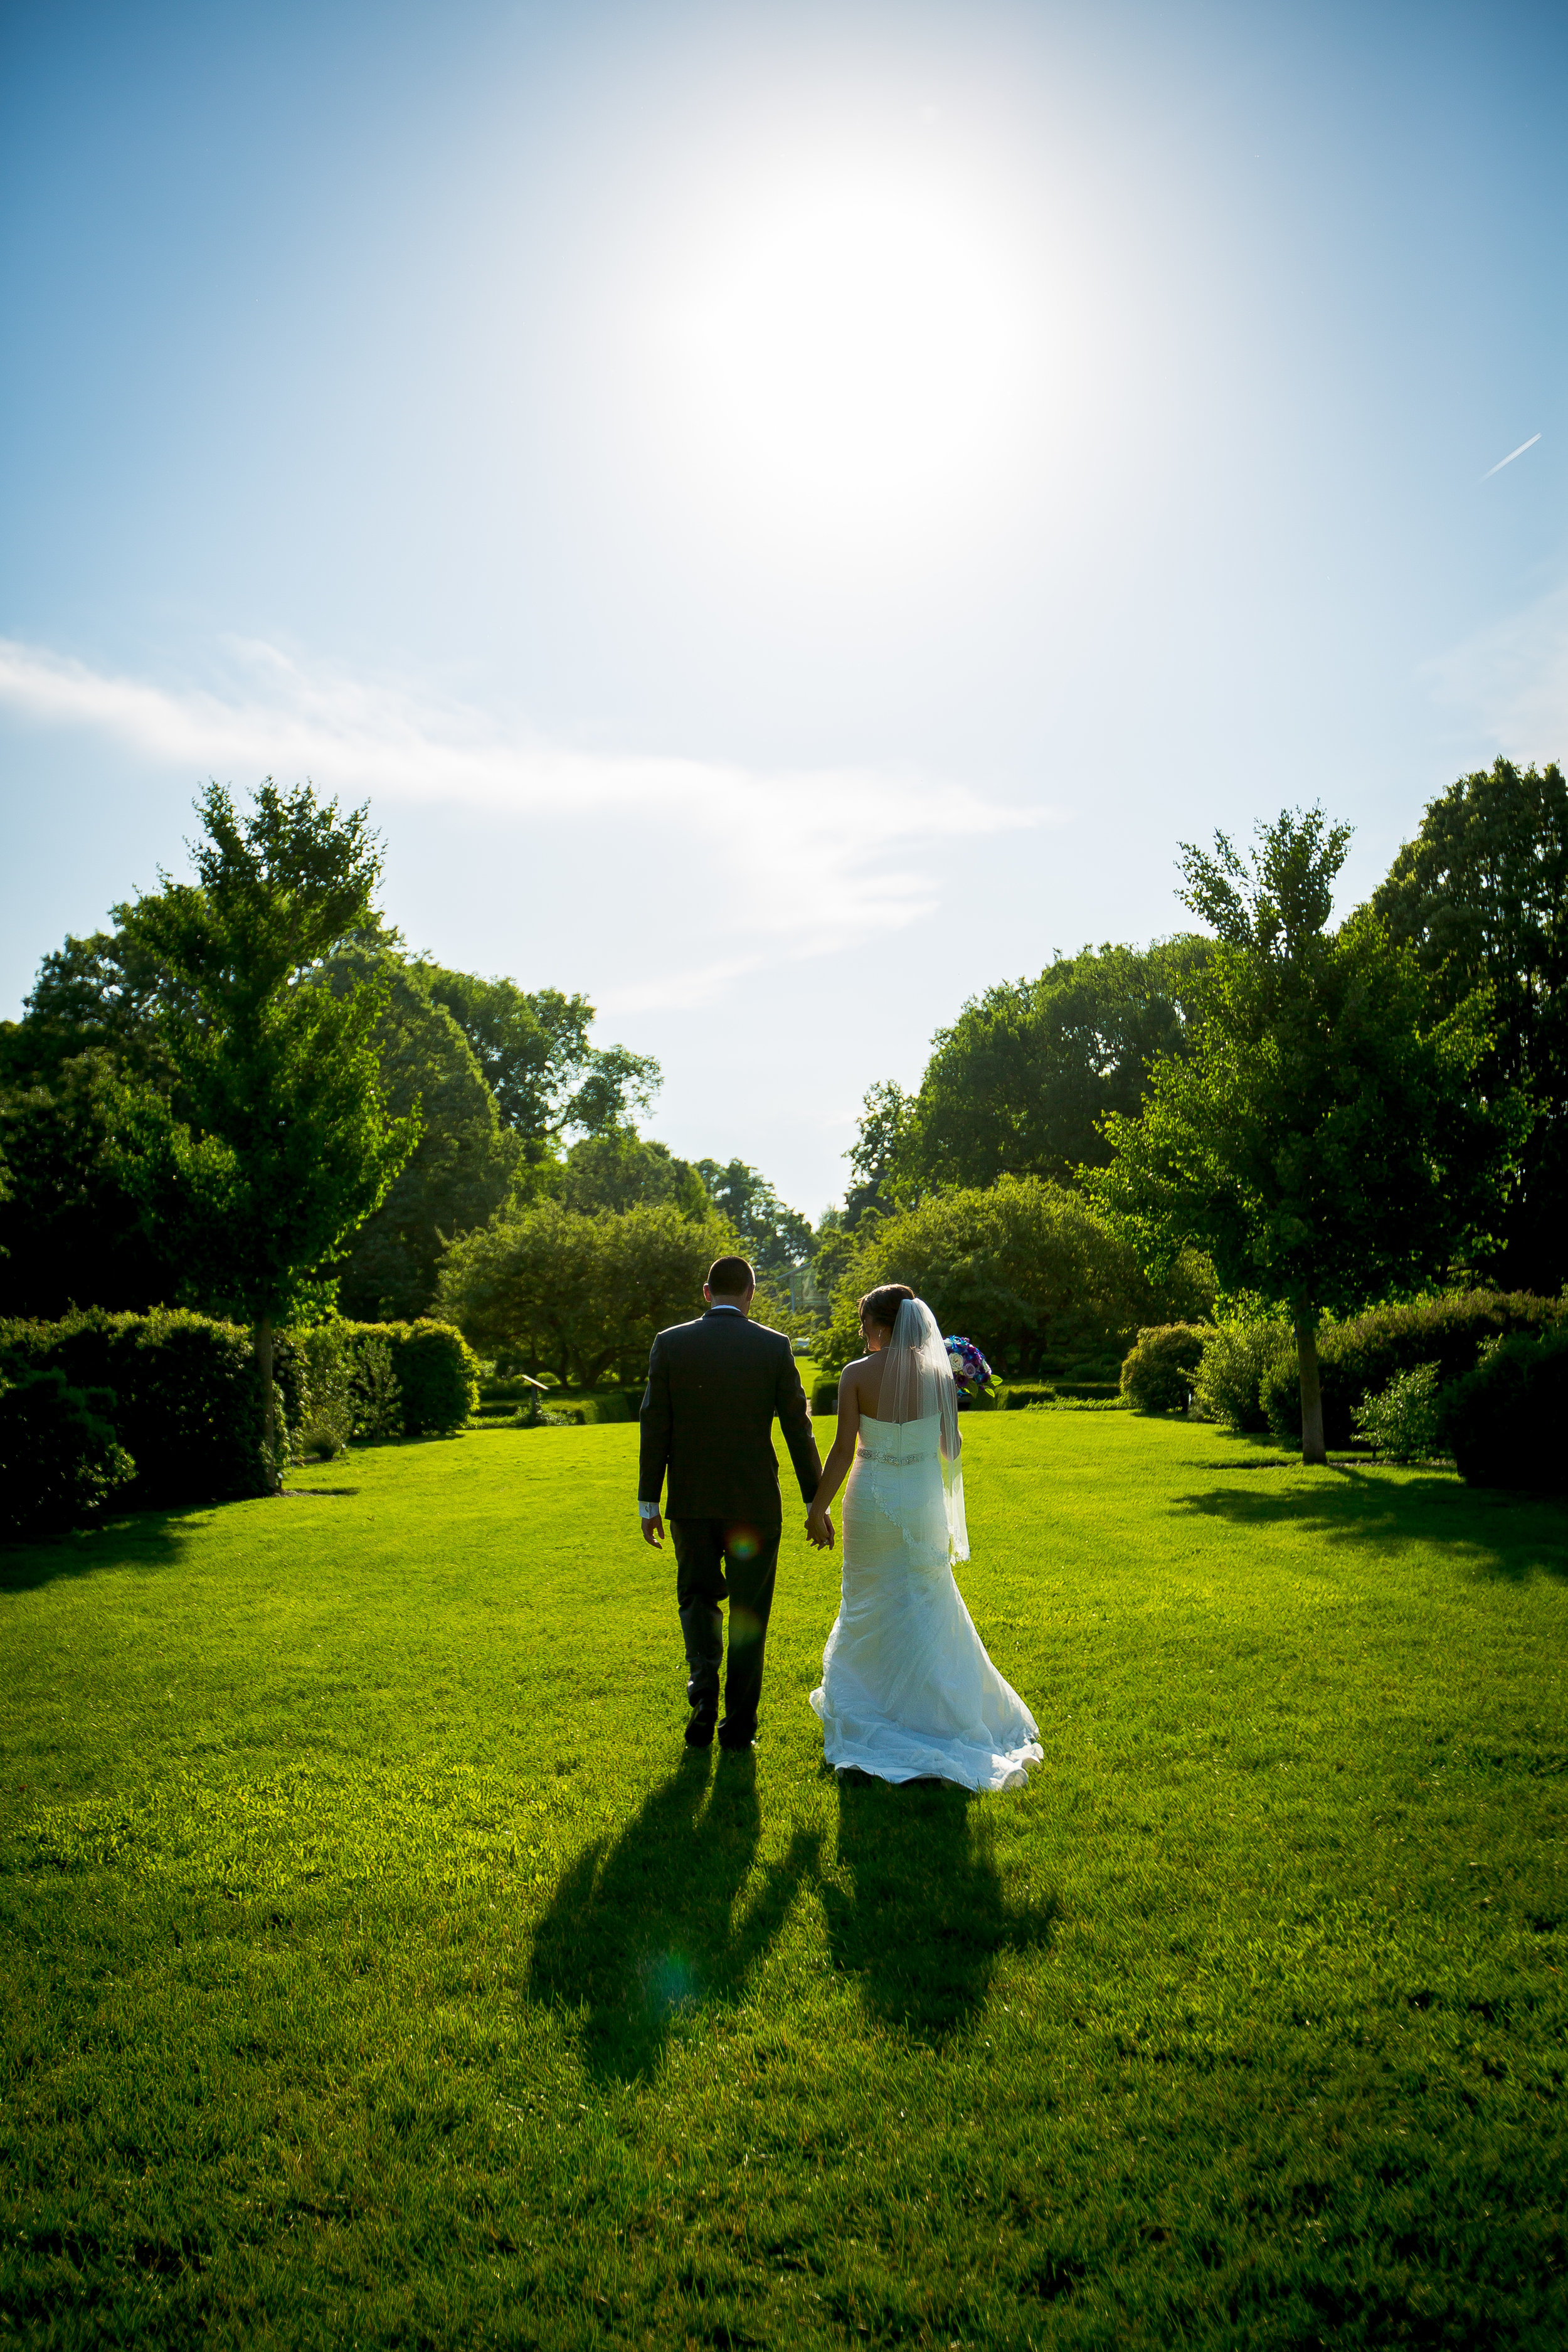 Bride & groom walking into the sunset